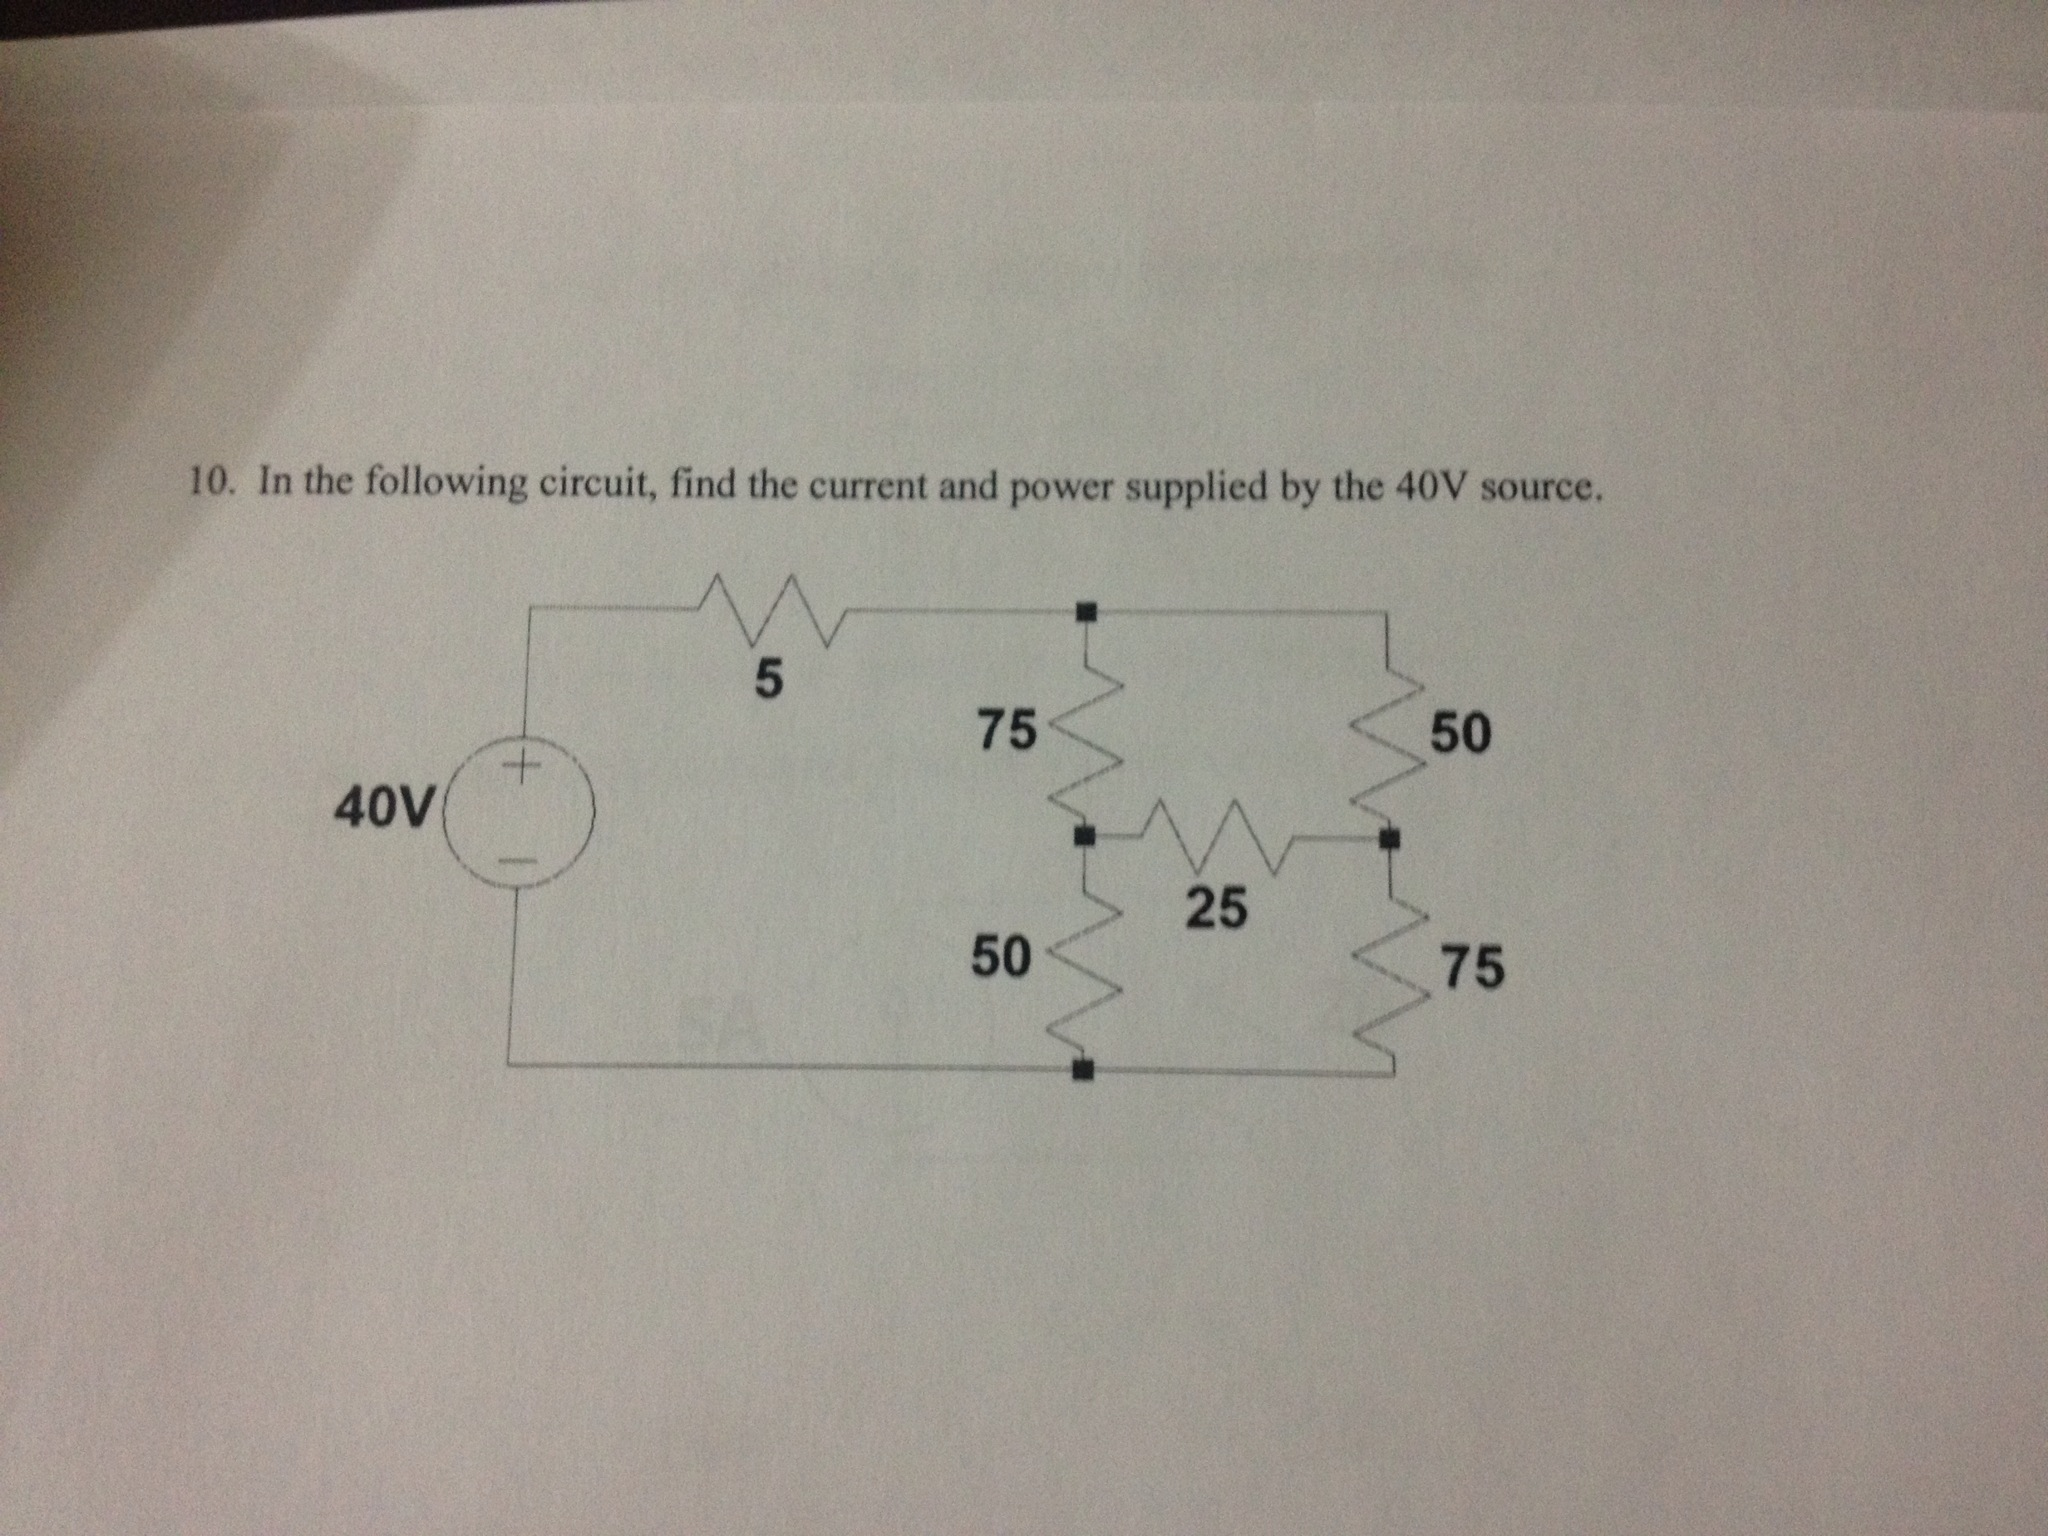 In the following circuit, find the current and pow